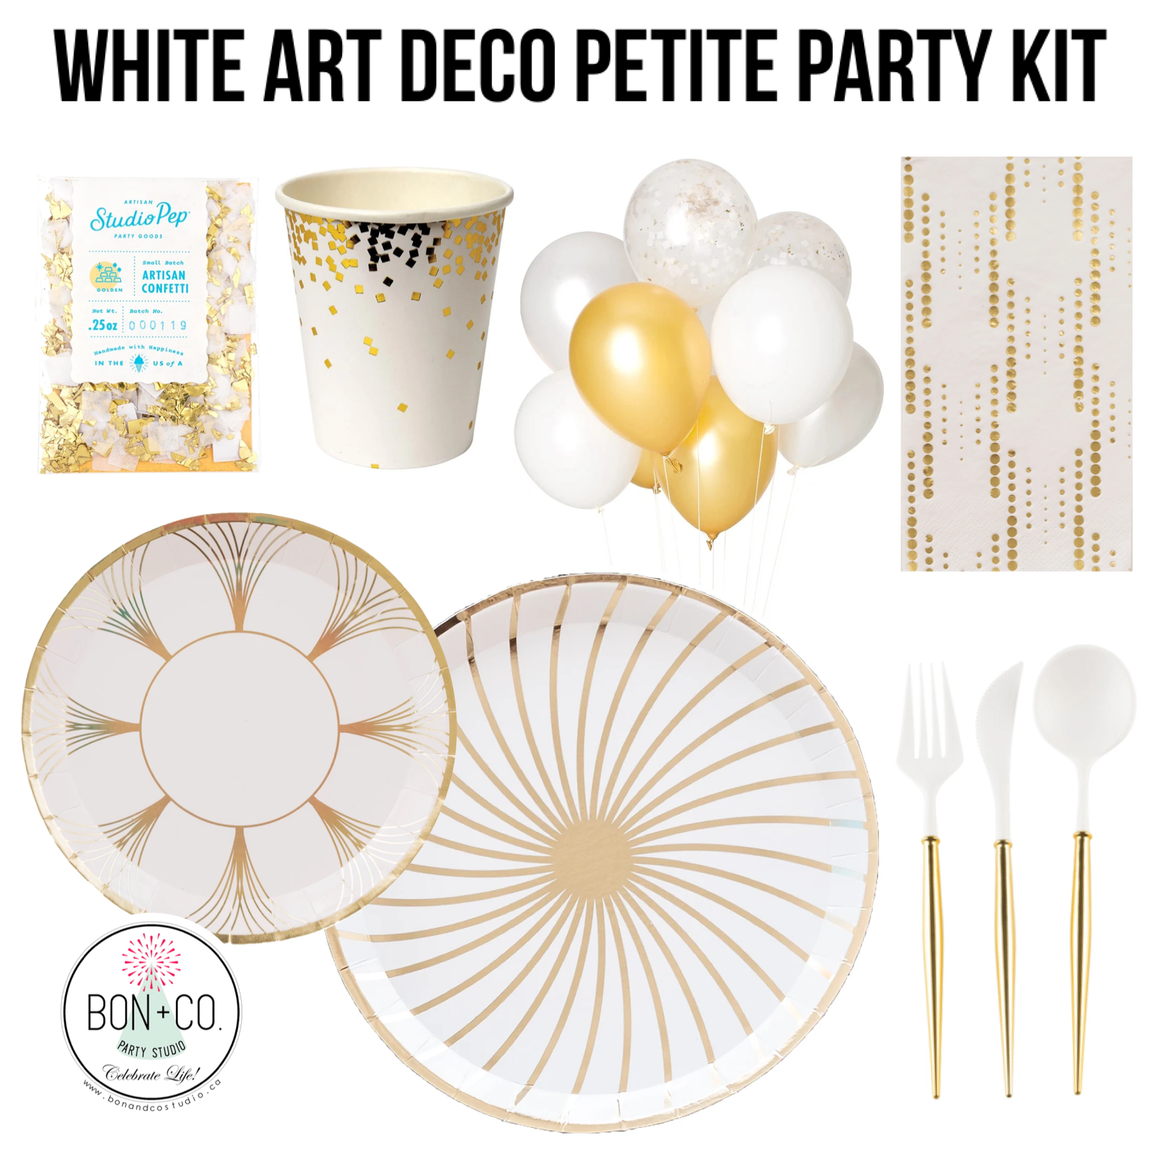 PETITE PARTY KIT LUXE - ART DECO WHITE